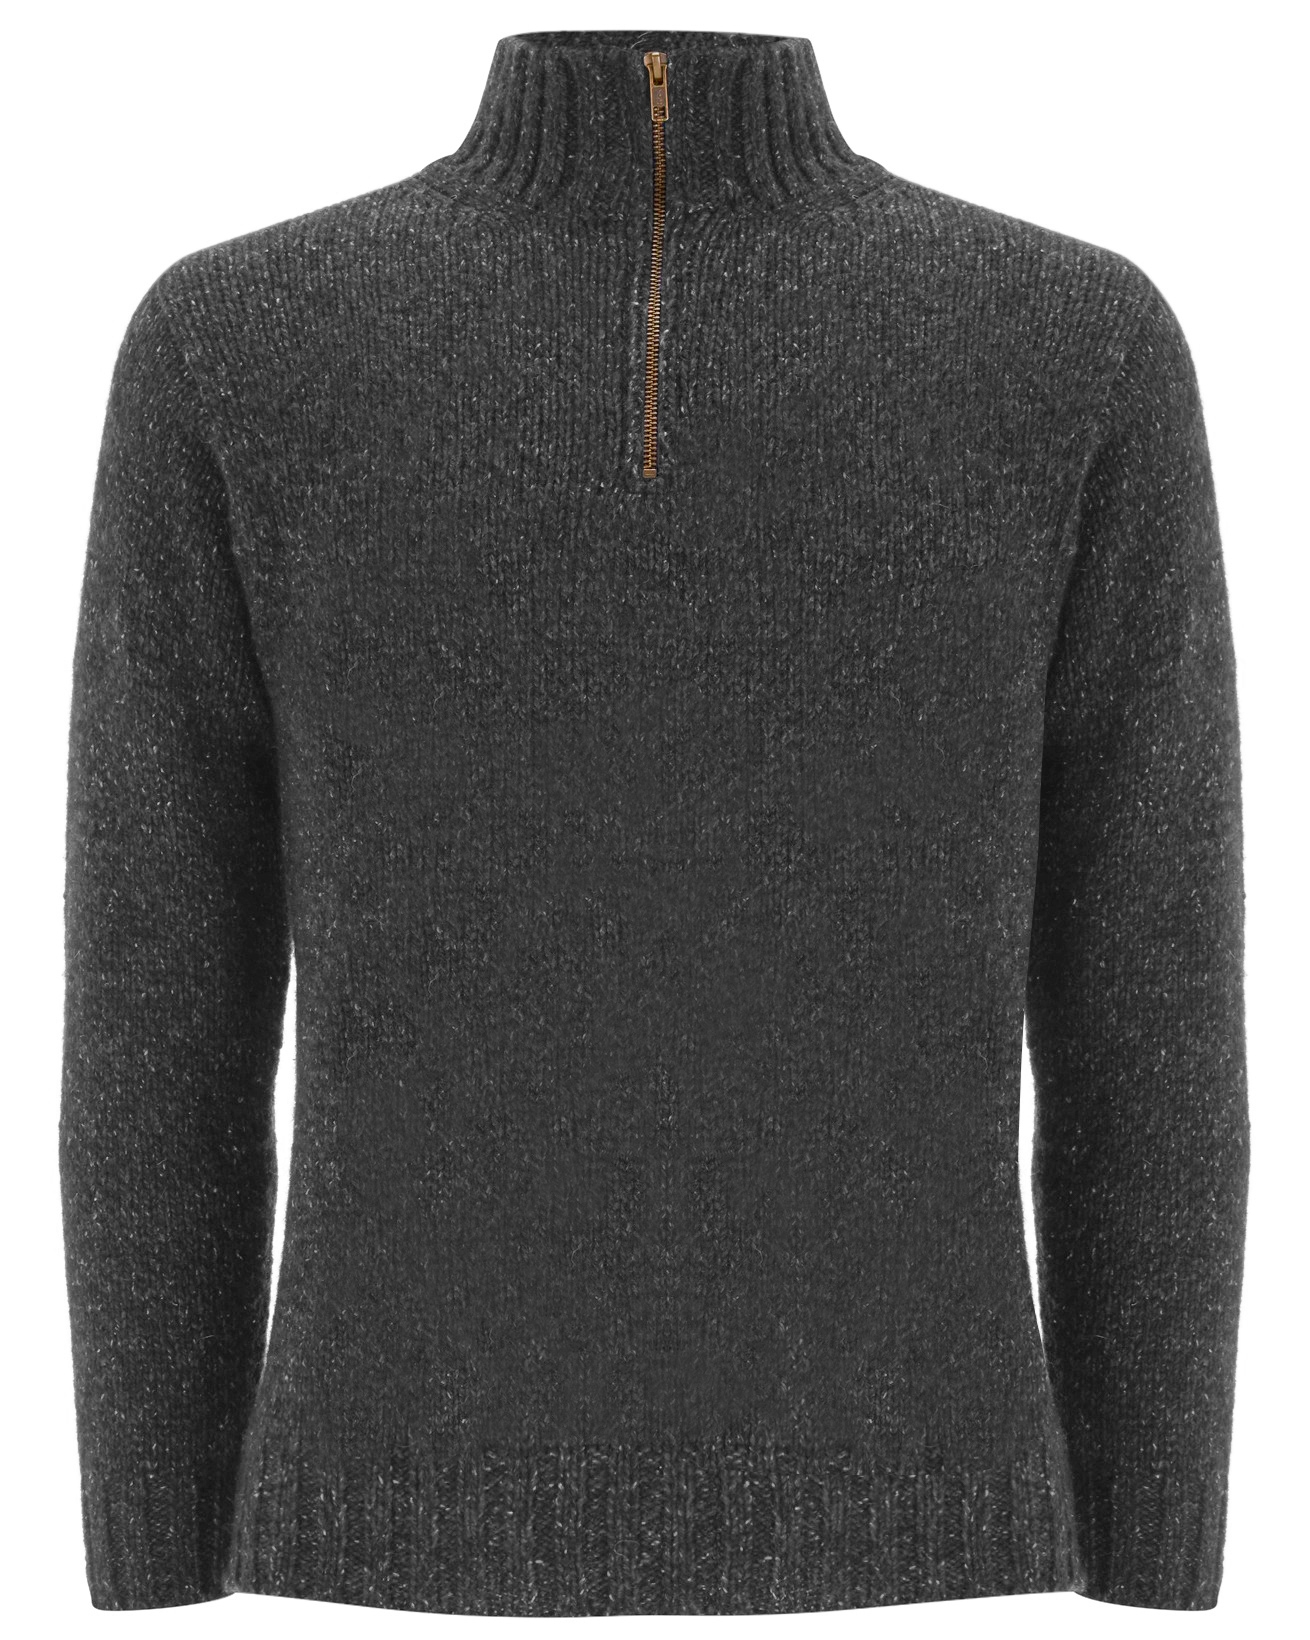 Men's Zip Neck Jumper